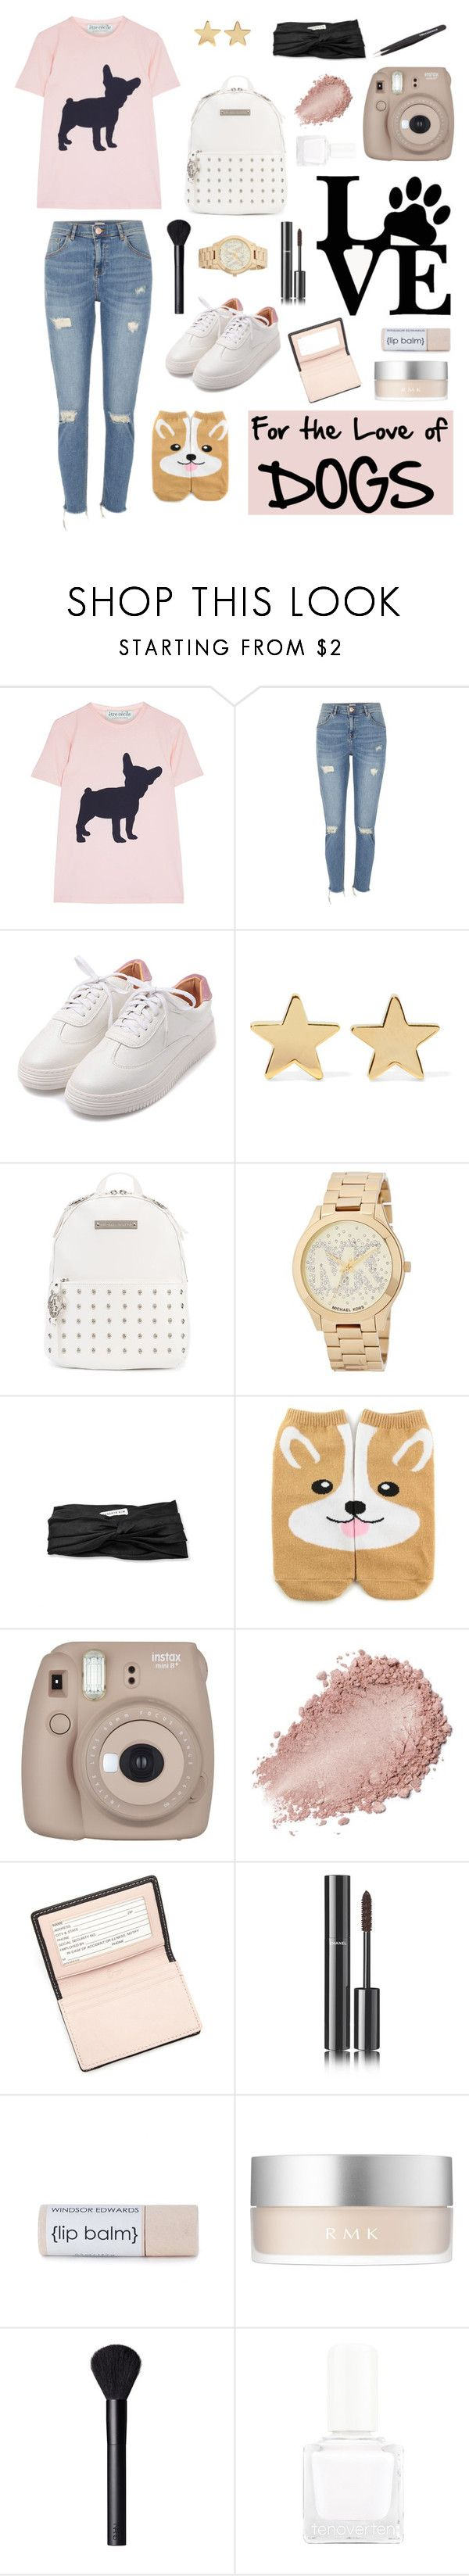 """For the love of dogs"" by at-39thst-fashion ❤ liked on Polyvore featuring River Island, Jennifer Meyer Jewelry, Thomas Wylde, Michael Kors, Eugenia Kim, Forever 21, WALL, Fujifilm, Royce Leather and Chanel"